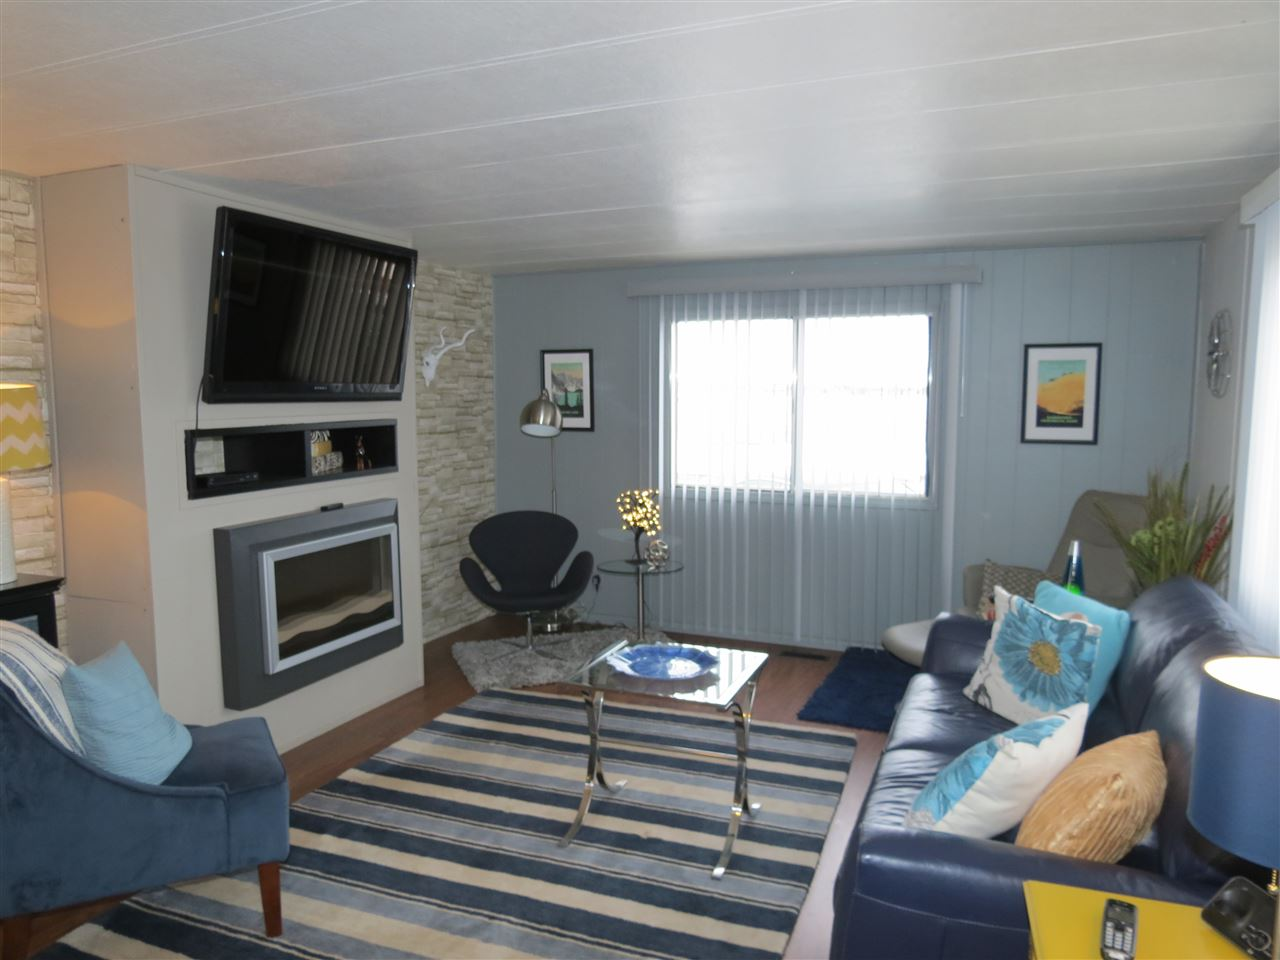 Photo 9: 55231 RR 261: Rural Sturgeon County Manufactured Home for sale : MLS® # E4051426